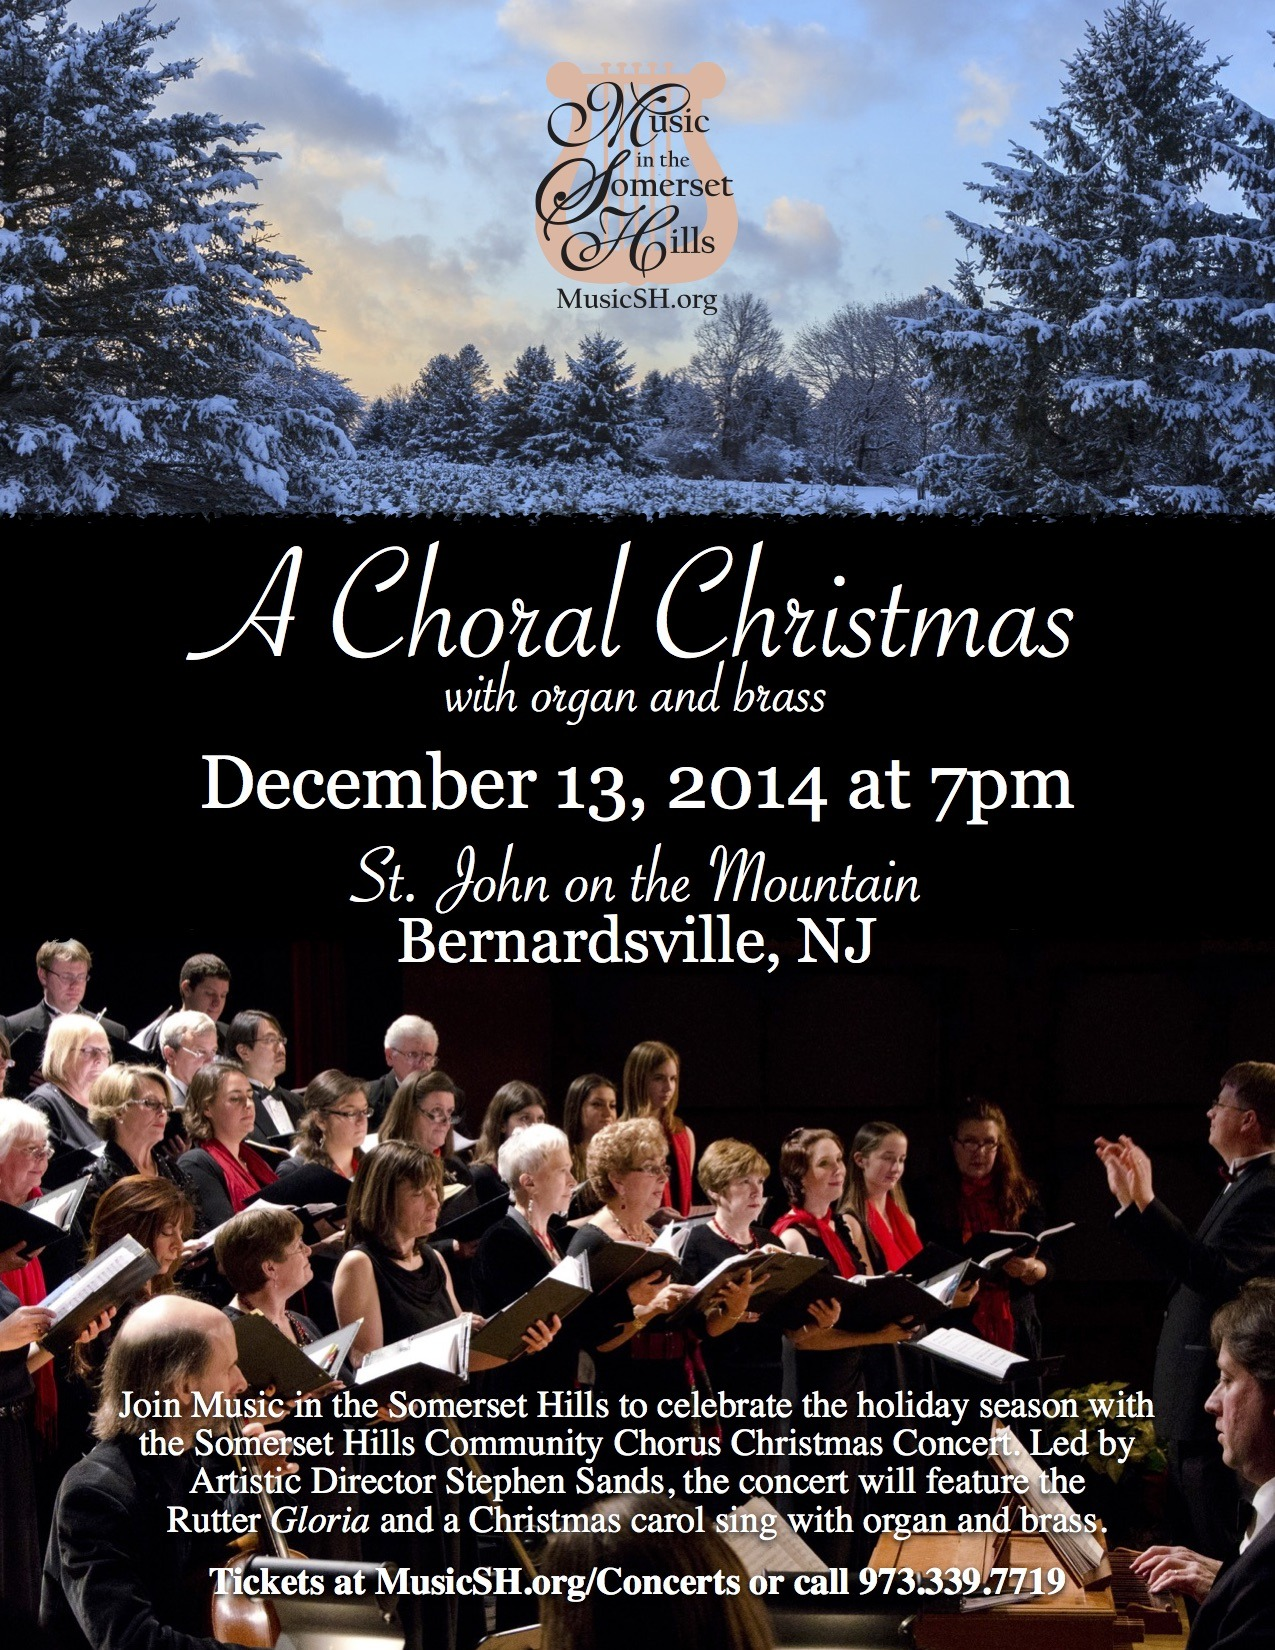 6a24ee4a734a7eebcfd9_Dec_Choral_Christmas_Poster_2.jpg